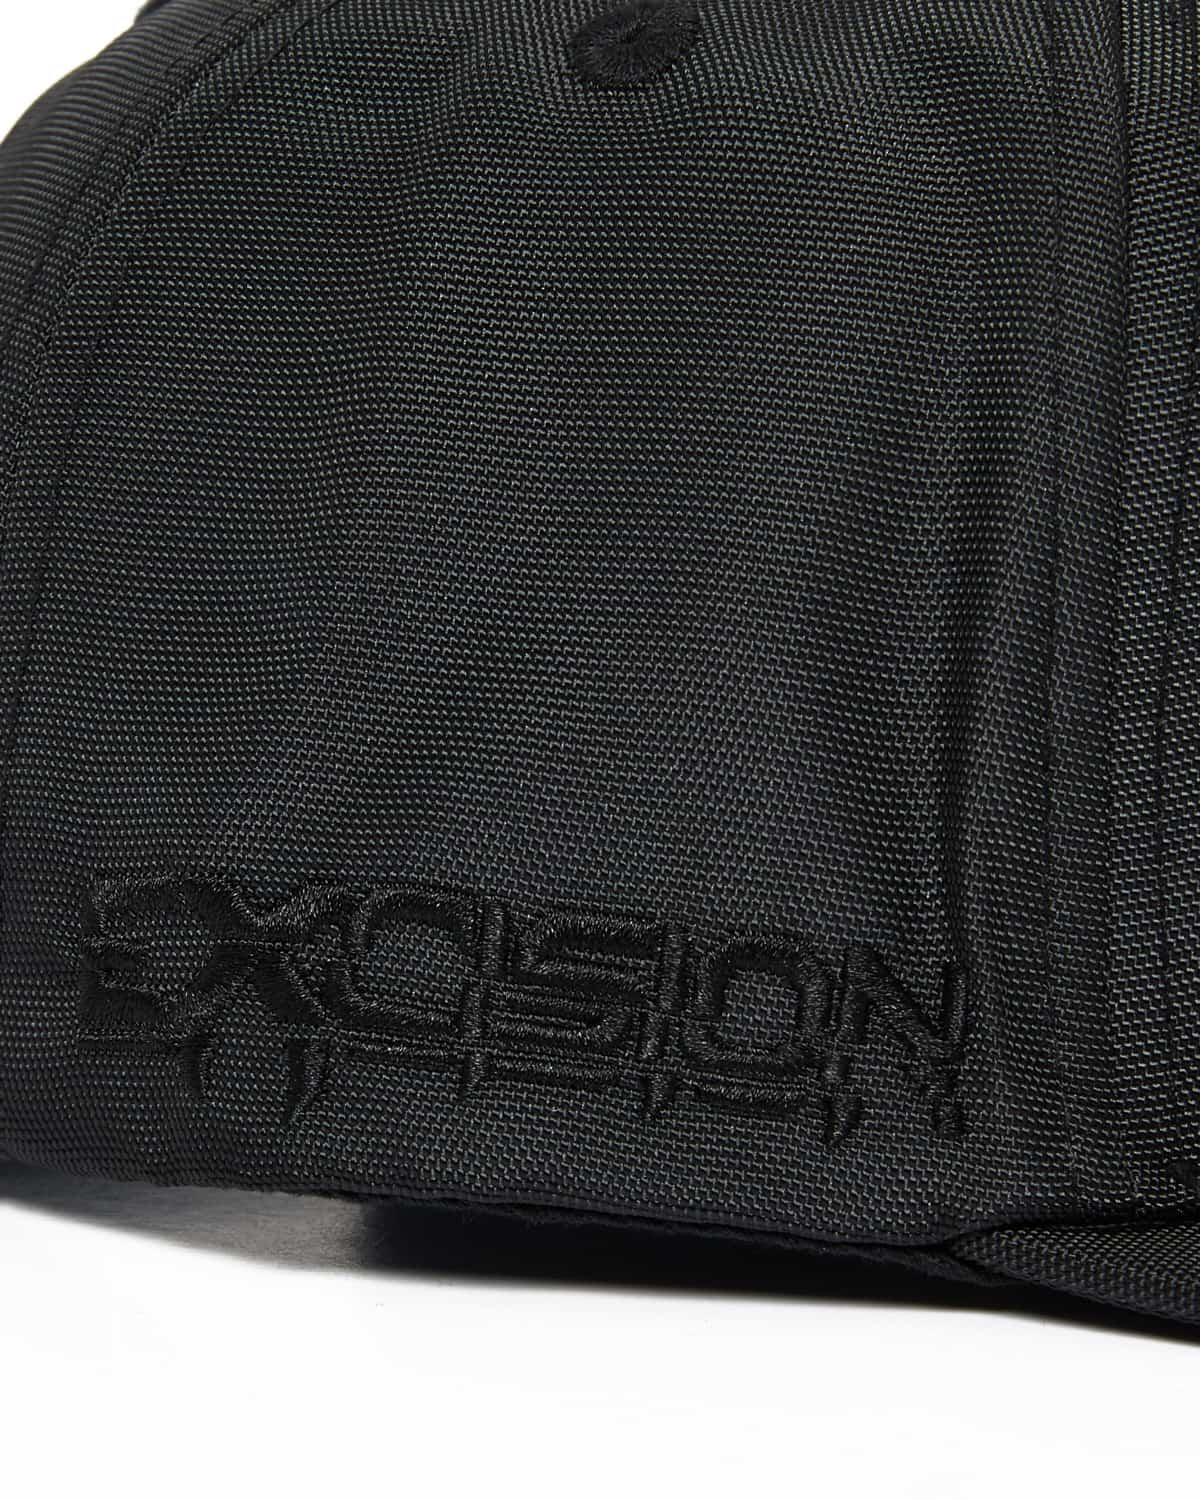 Excision 'Decepticon' Ballistic Snapback - Black